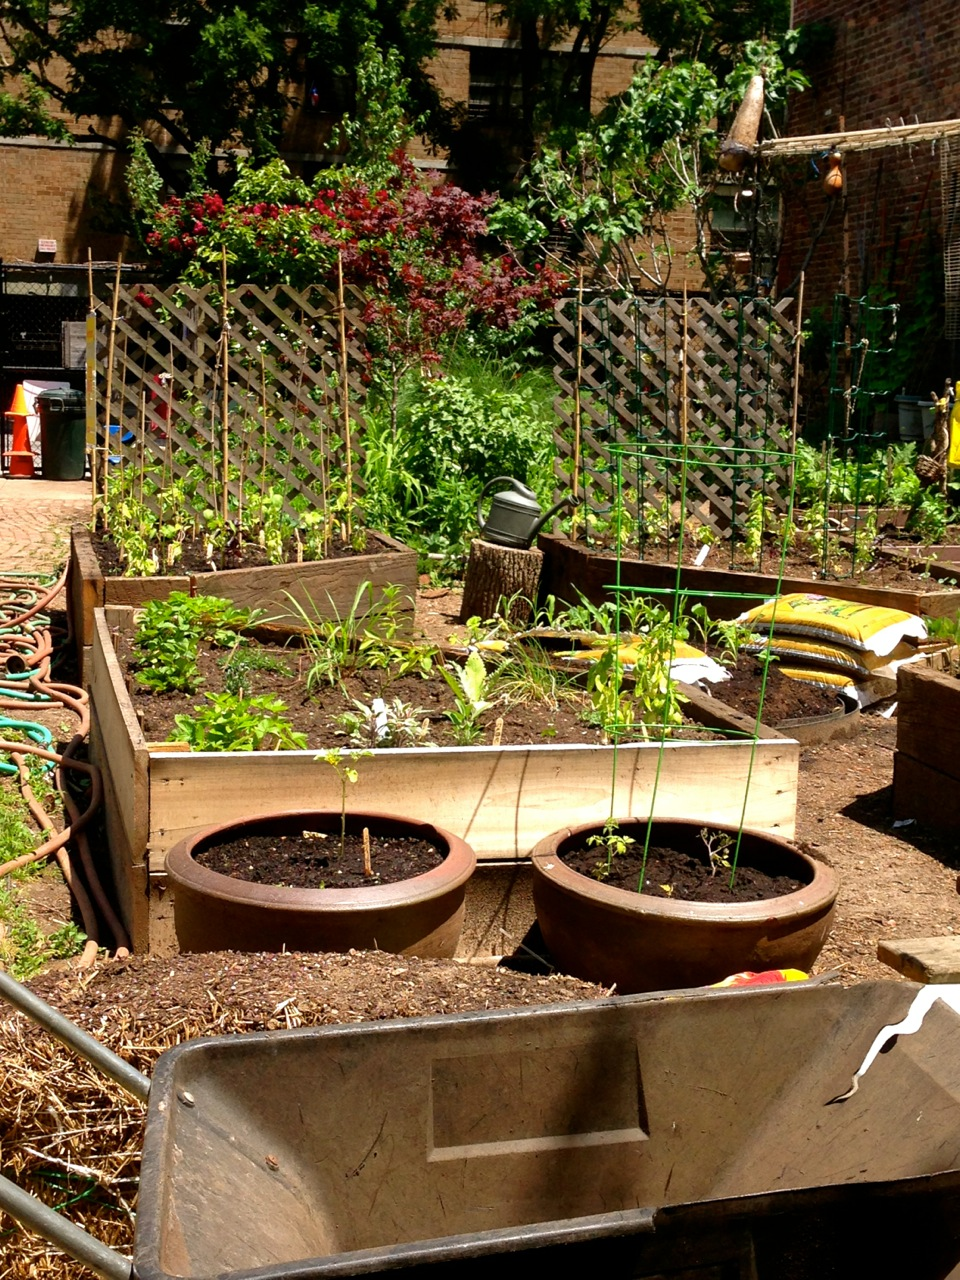 Campos\' Young Neighbors Help Plant Children\'s Garden | NYC Foodscape